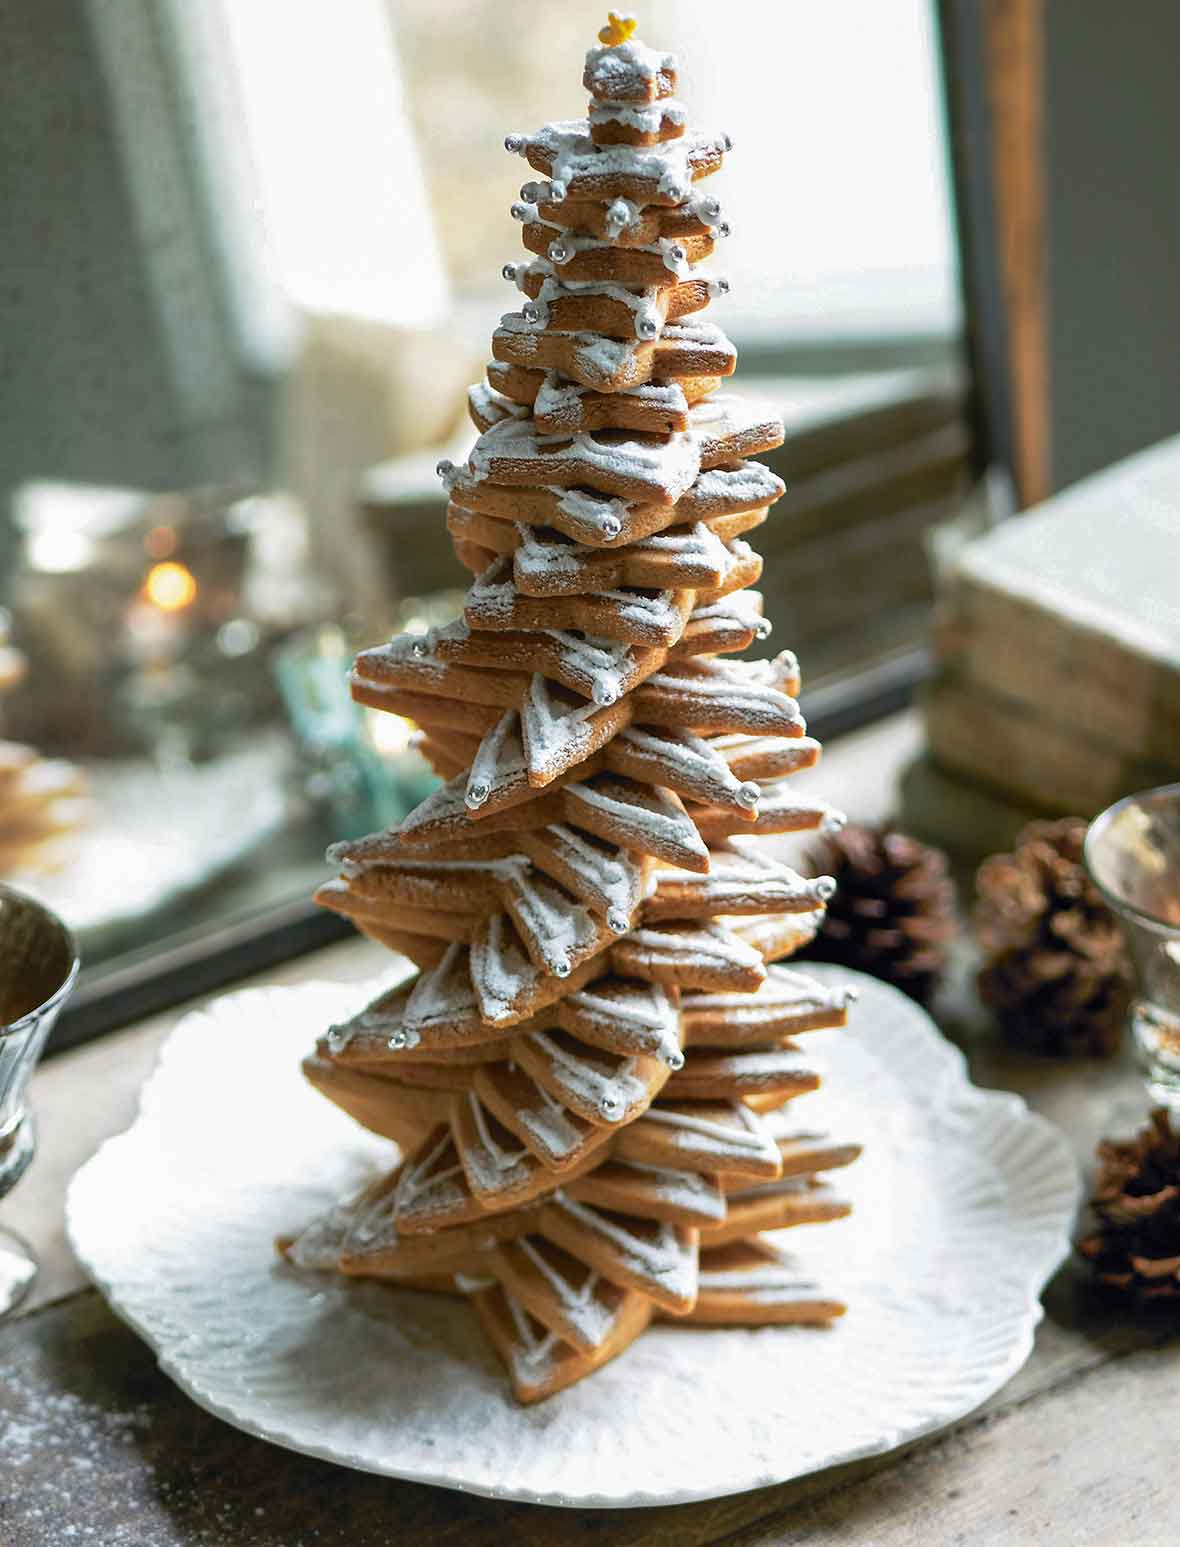 A Christmas tree made of decorated cookies